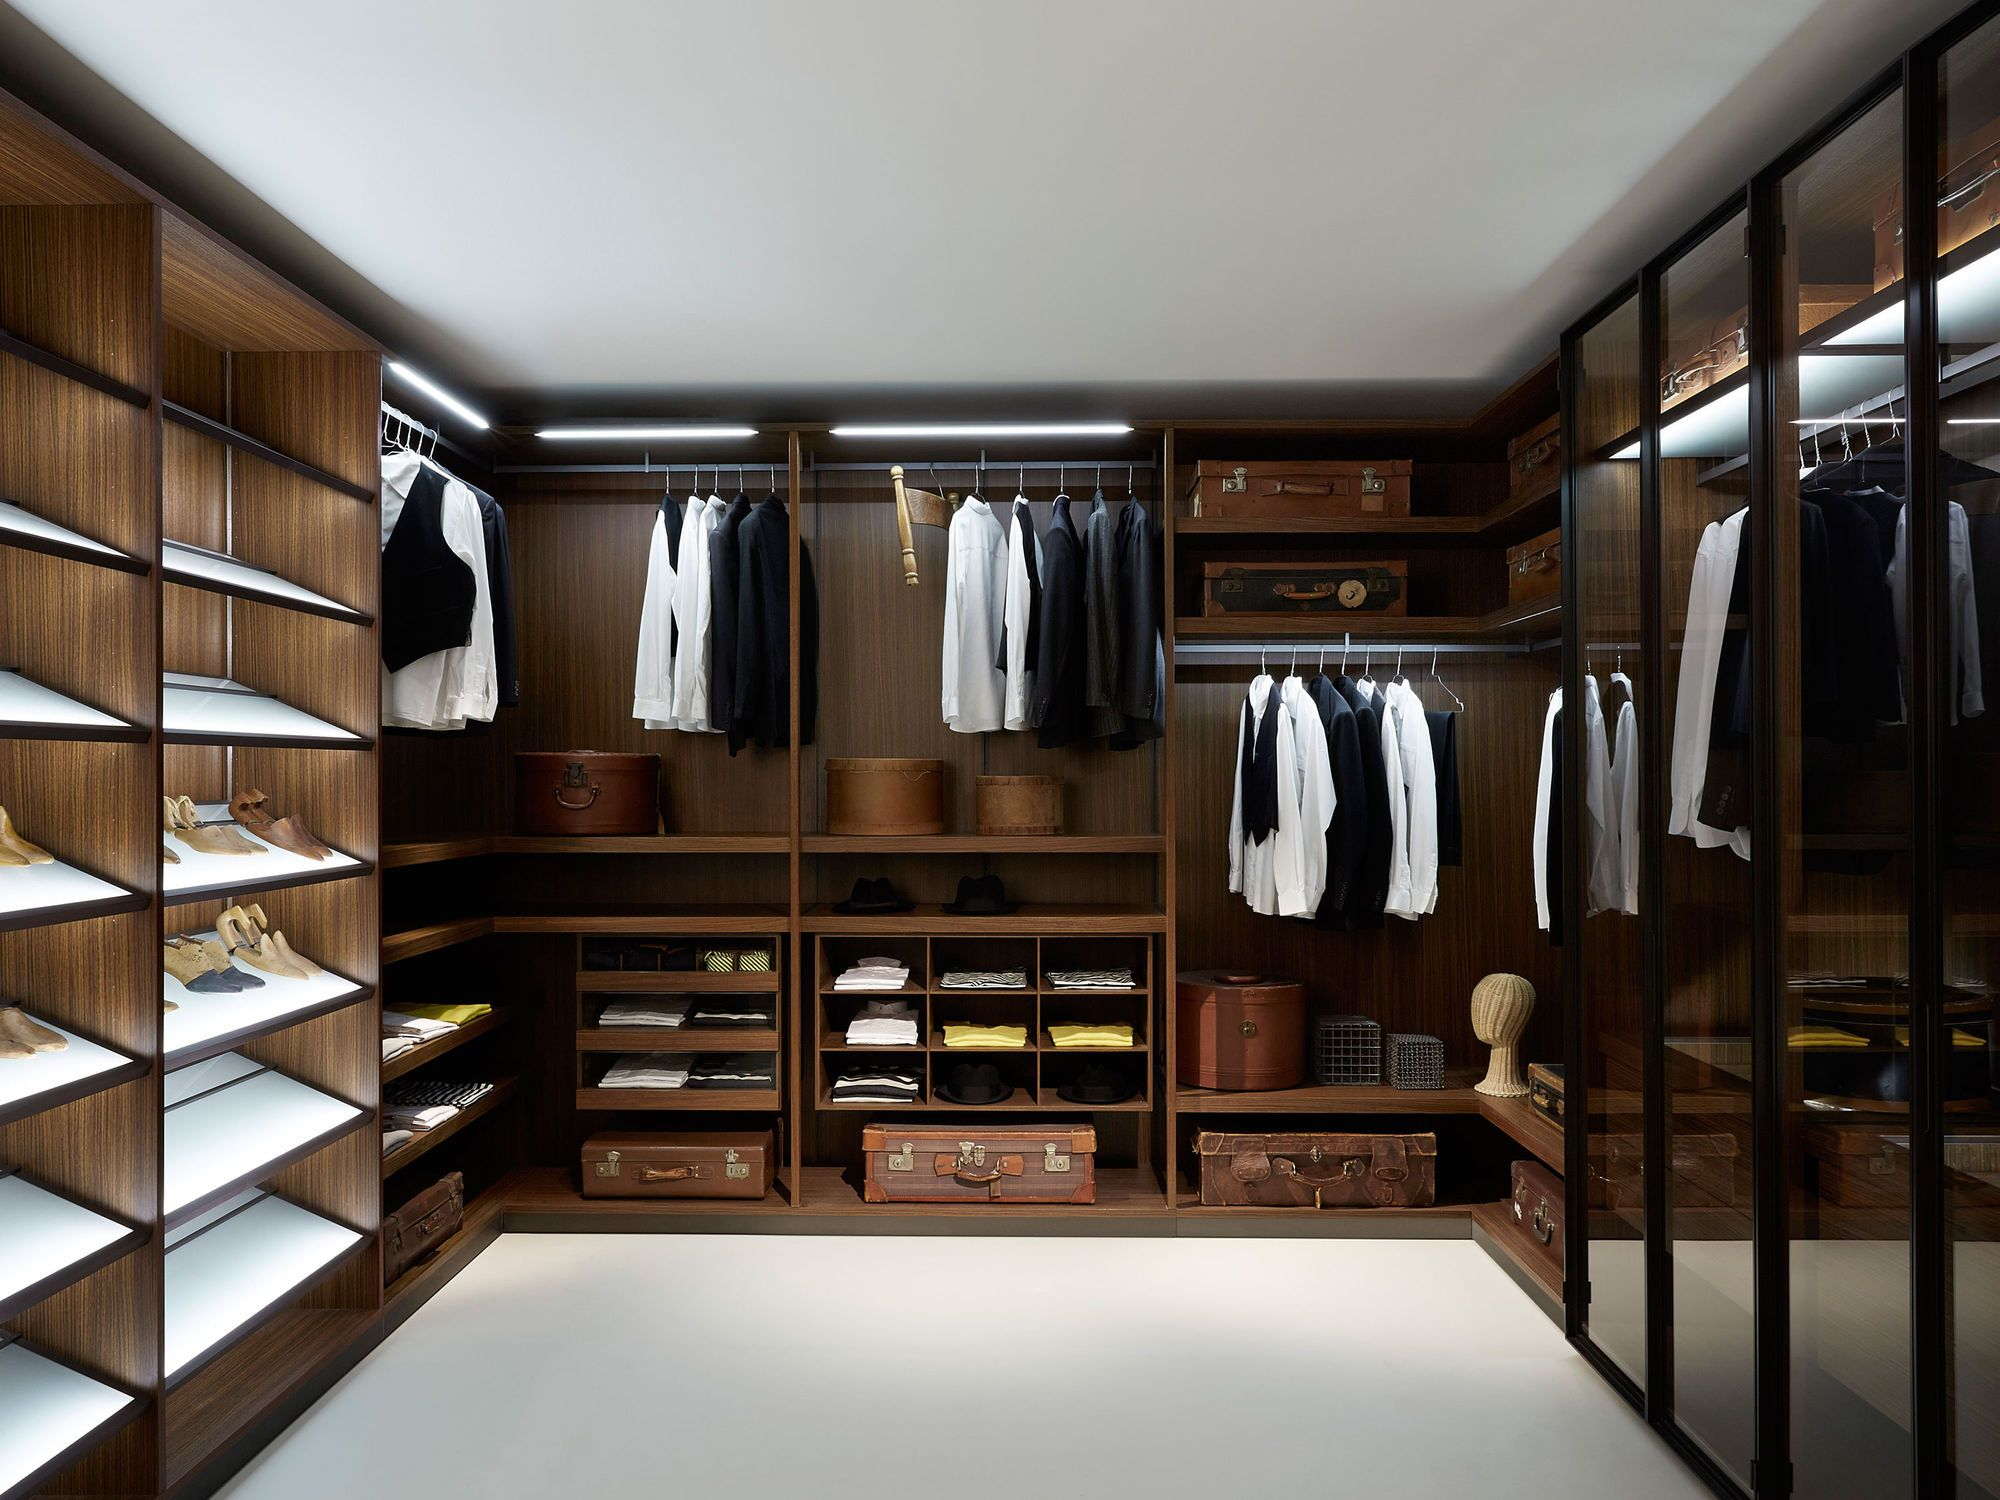 Walk In Closet Design Ideas walk in closet design ideas 2016 photoshoot gallery In This Post We Have 21 Best Traditional Storage Closets Design Ideas For Your Beautiful